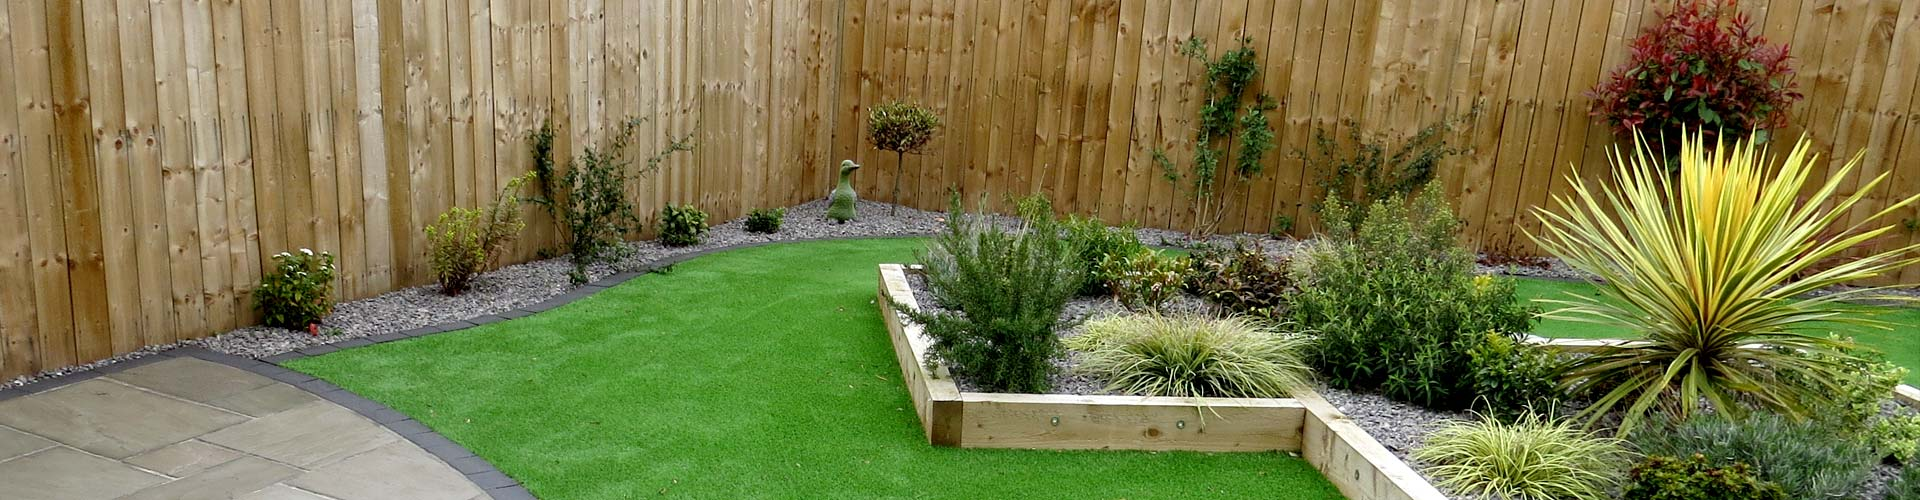 Small Garden Landscaping Stockton On Tees